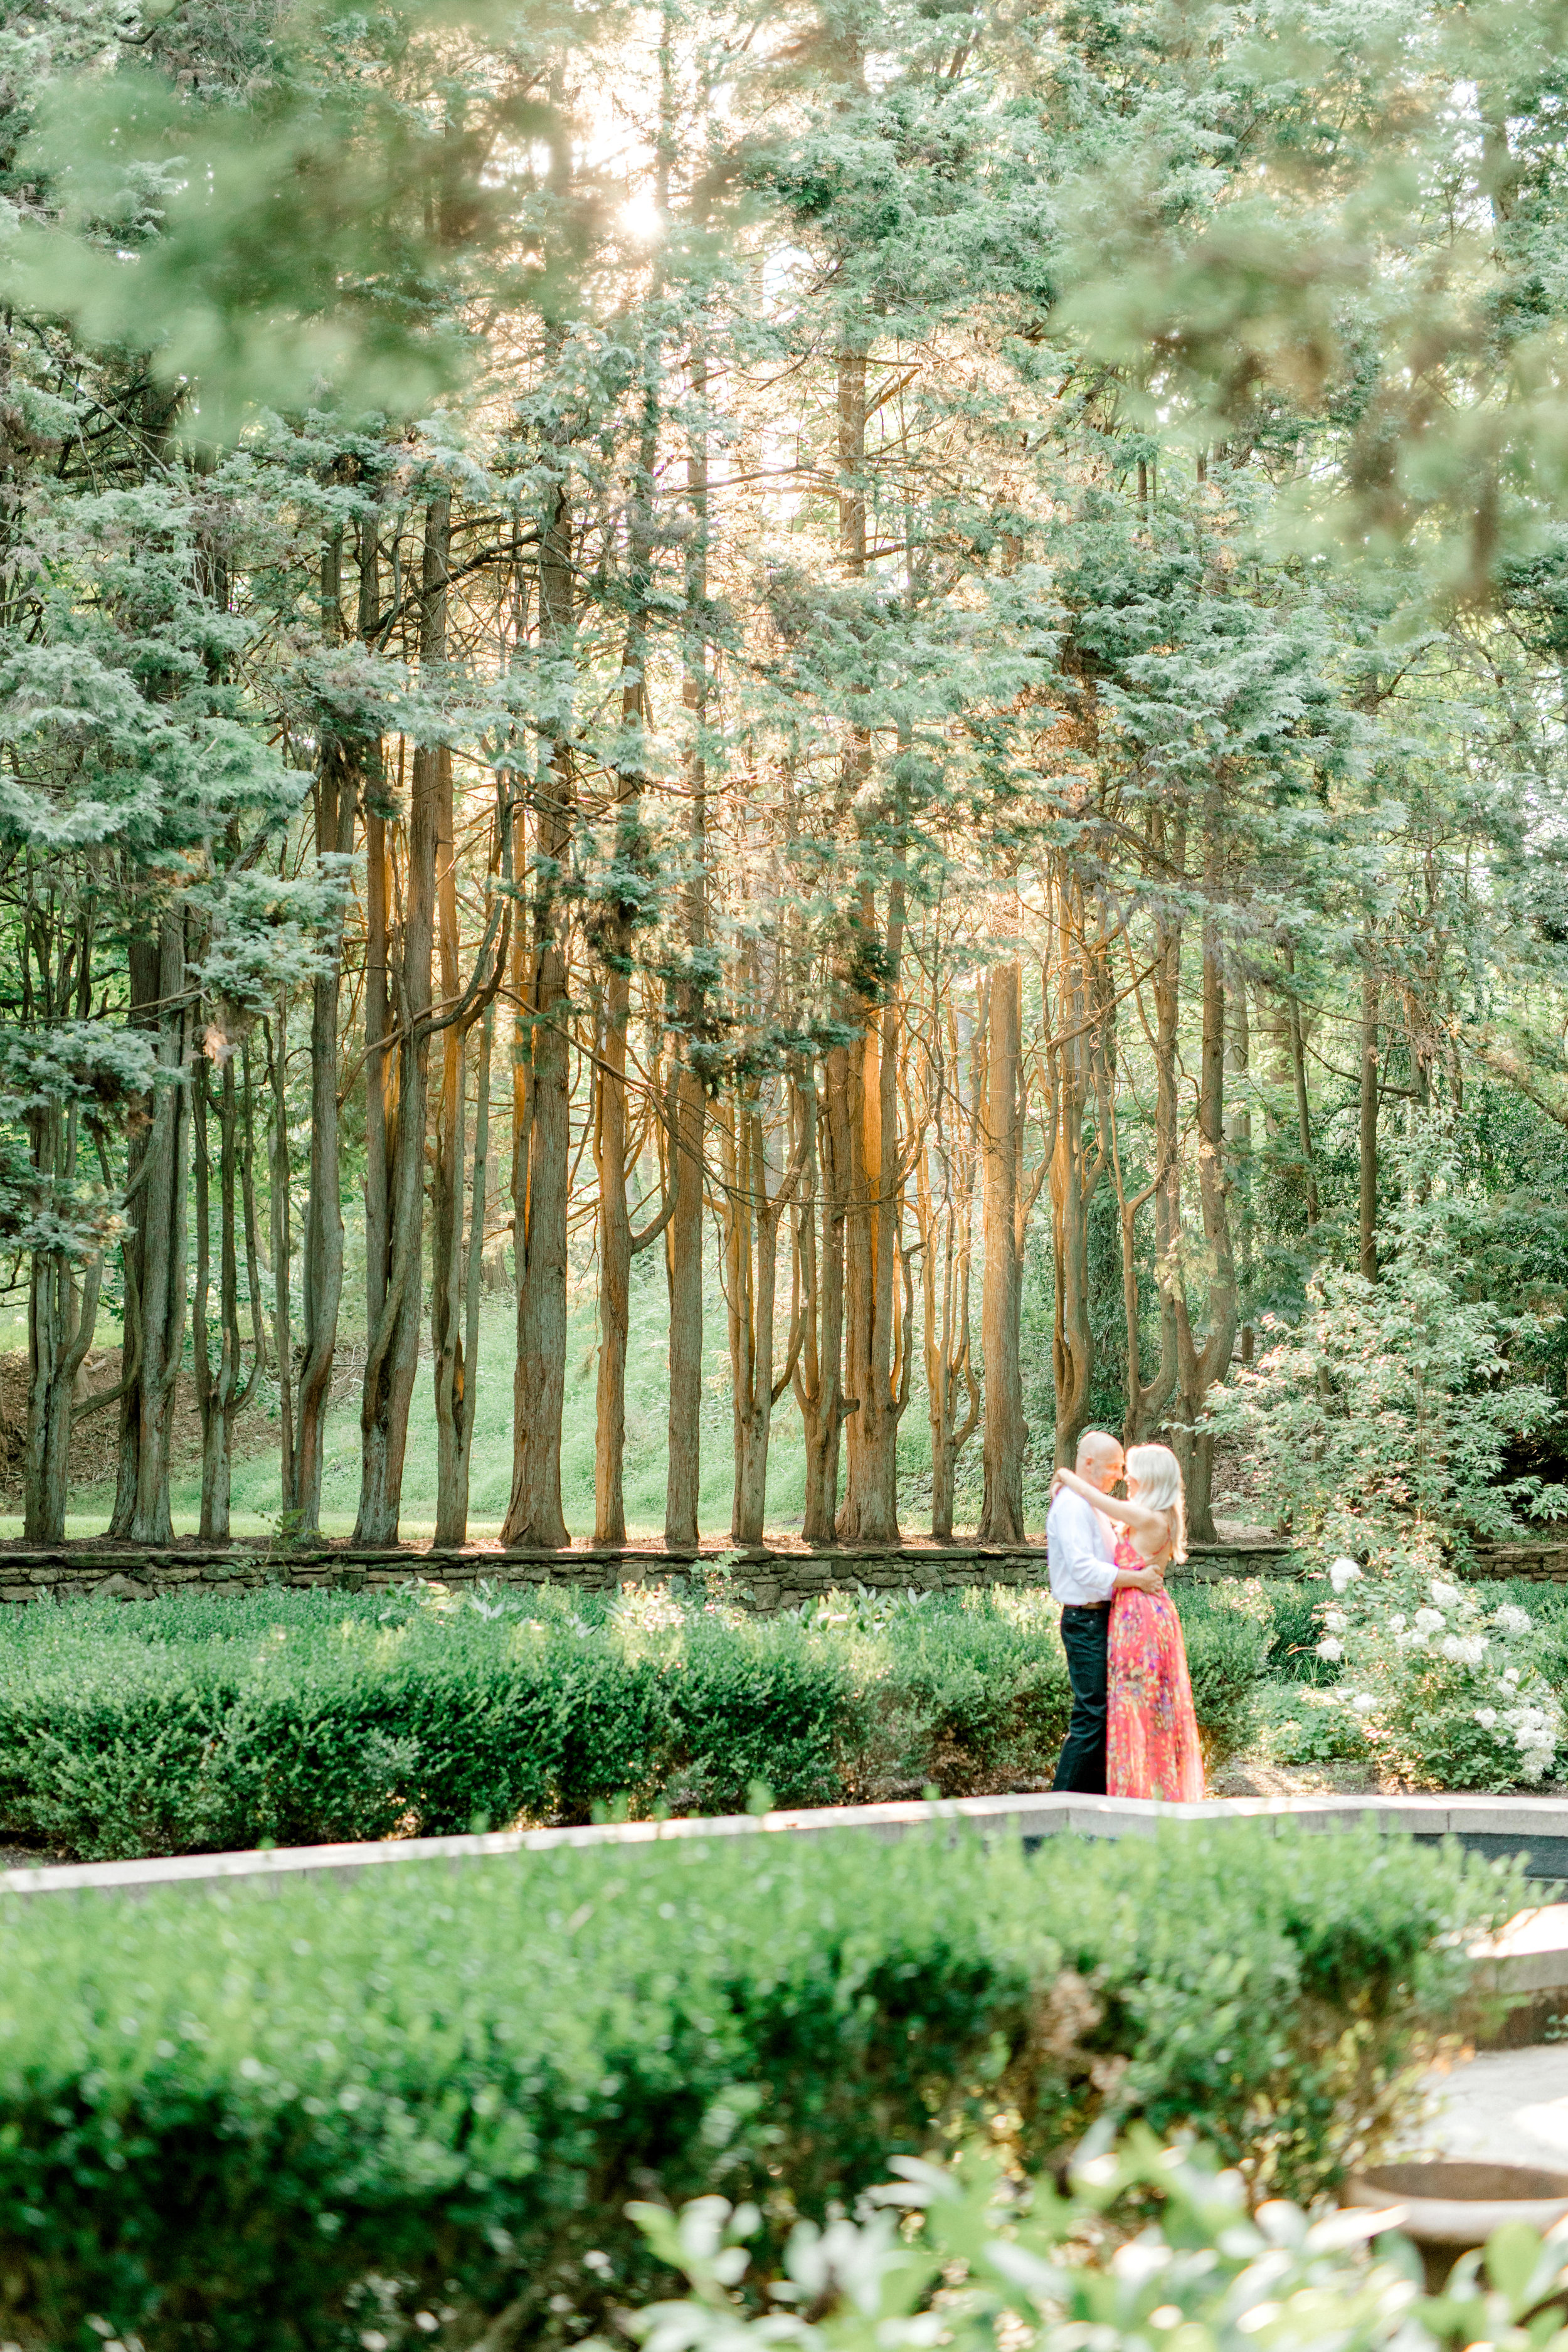 More of that glowing sun coming through the trees for Liz and Bill's romantic woodland engagement session at Parque at Ridley Creek.